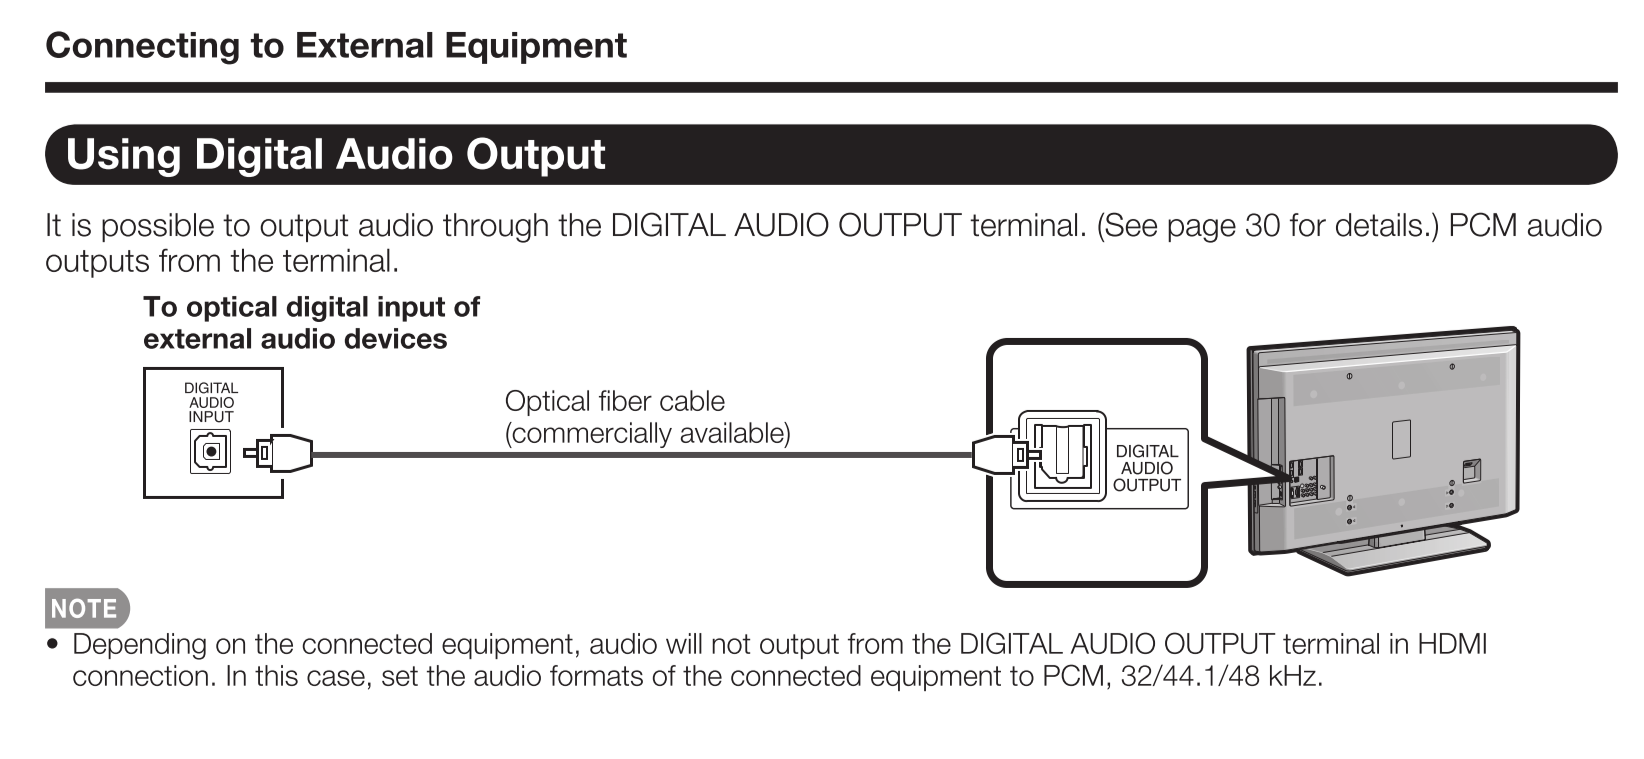 even though there is no audio adjustment for the genie   all is not lost  i  suggest connecting the genie mini c41w-100 via hdmi to your tv